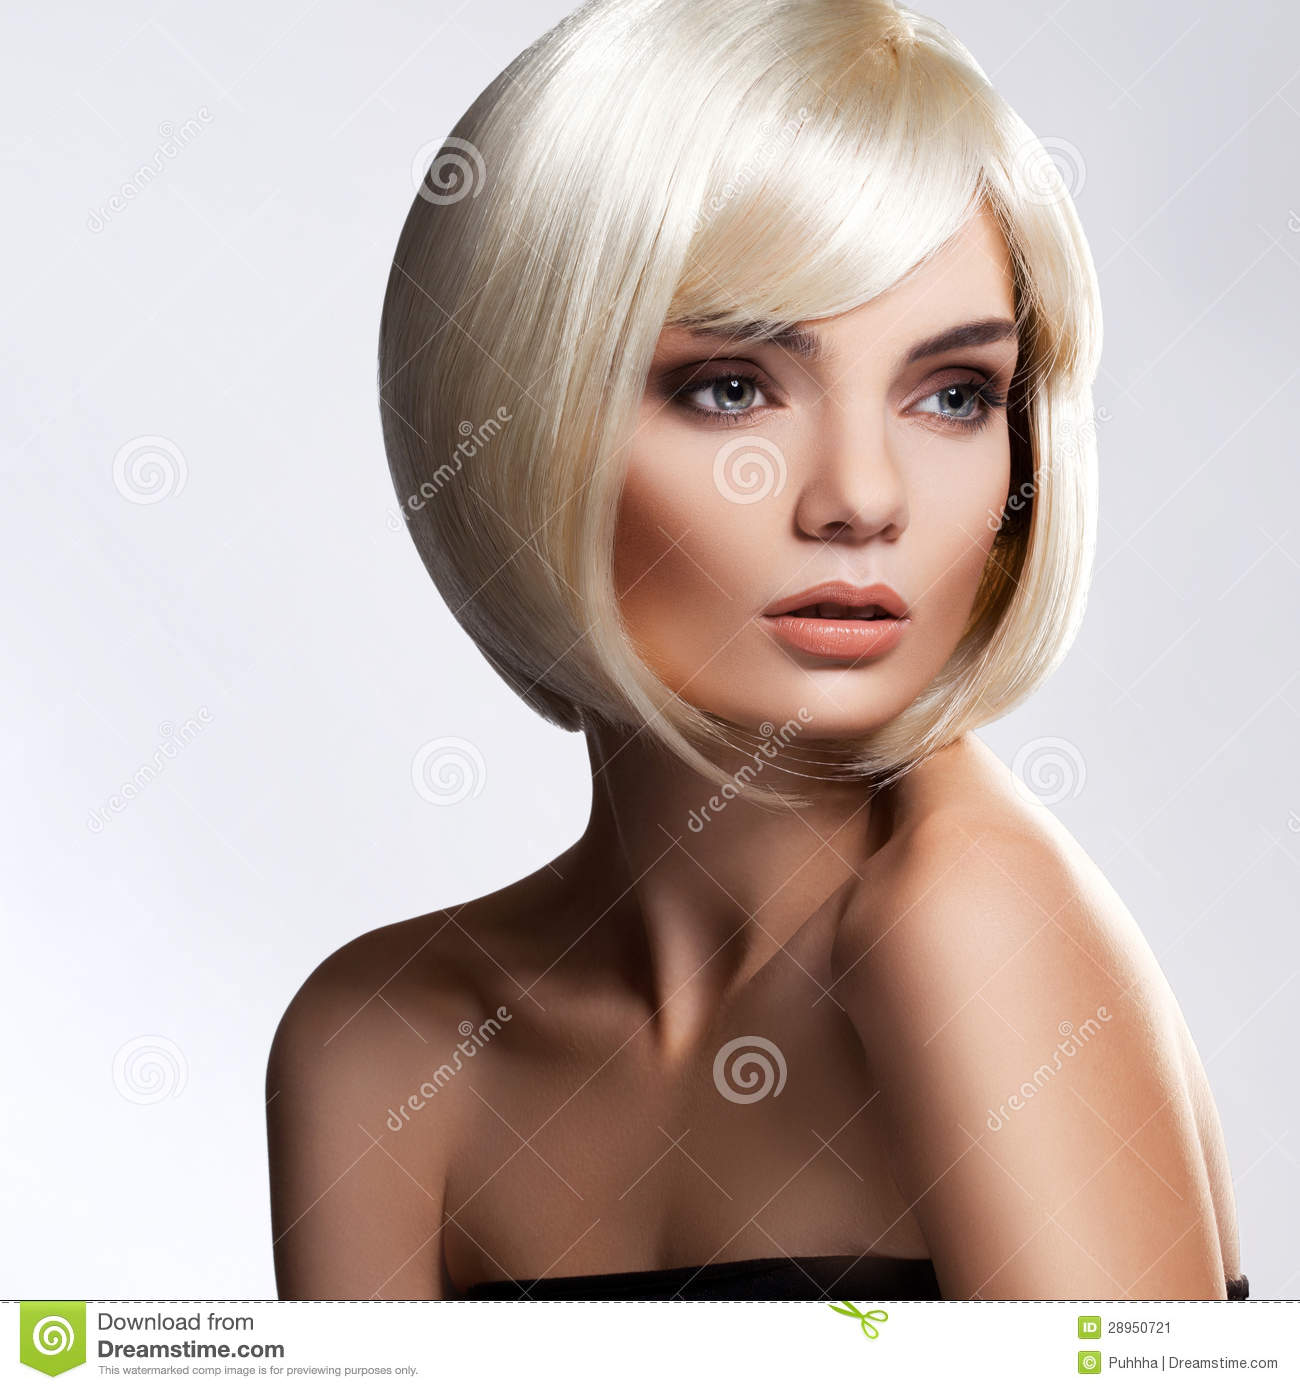 Blonde Hair High Quality Image Stock Image Image 28950721